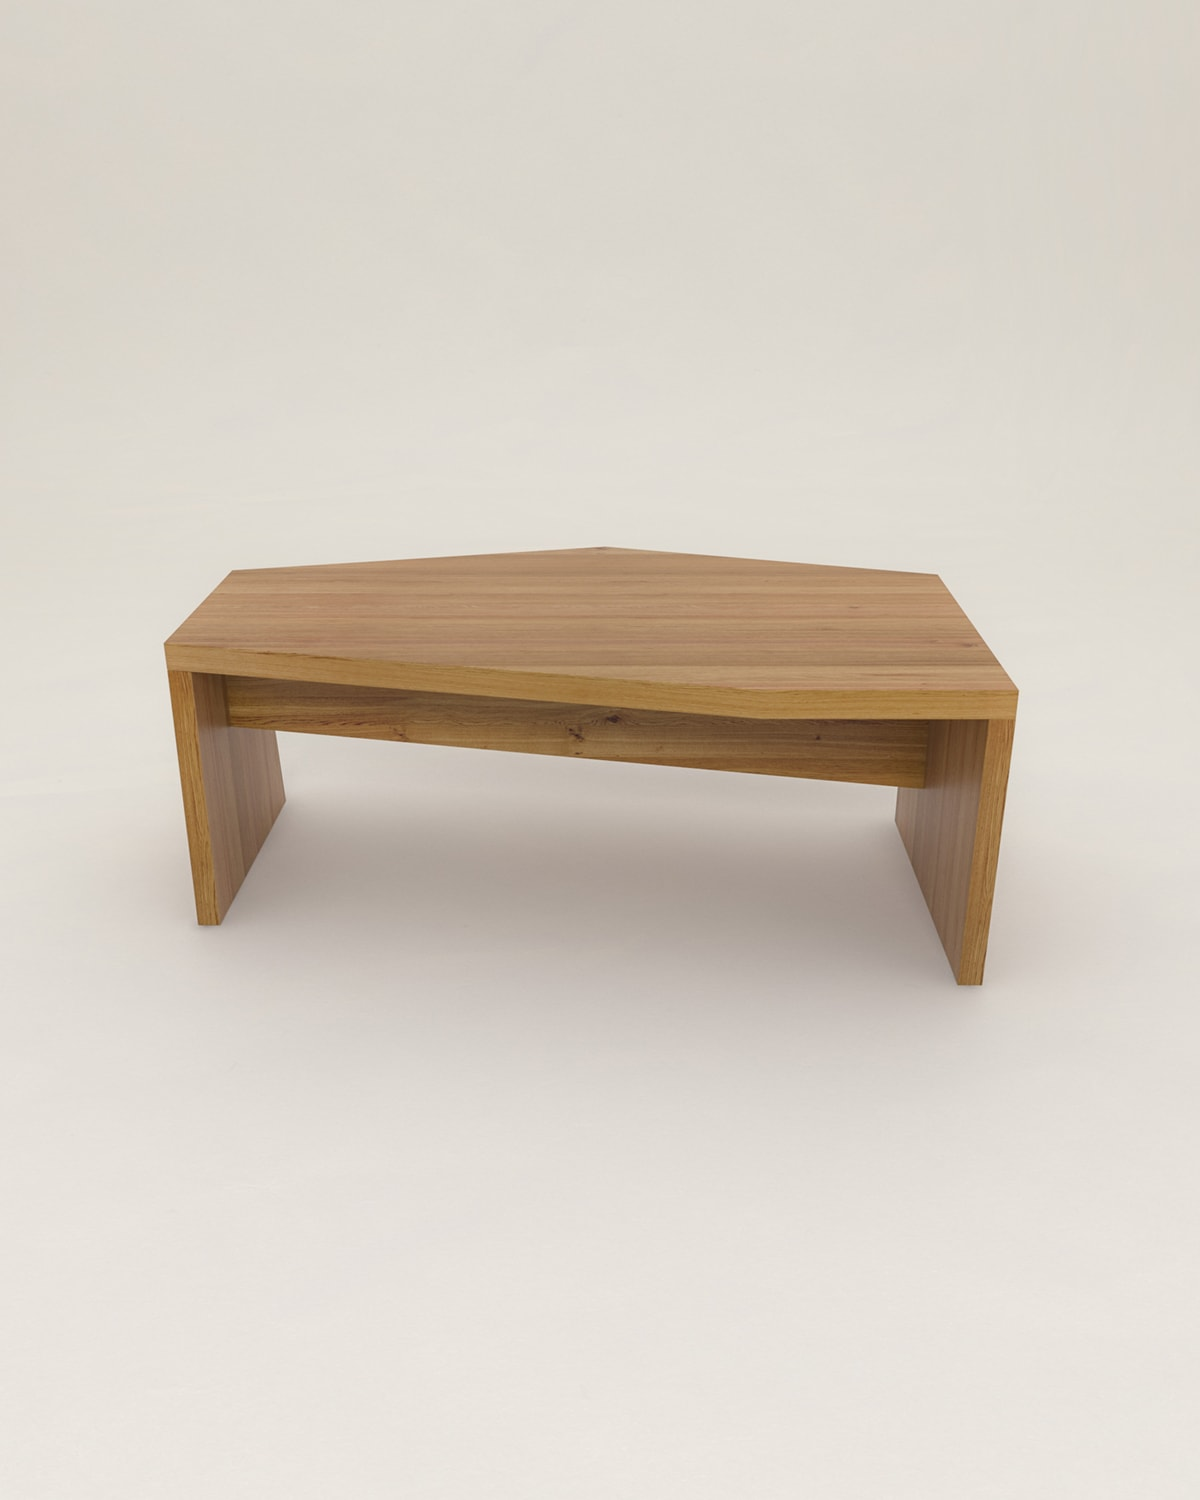 crooked_coffee_table_05_2